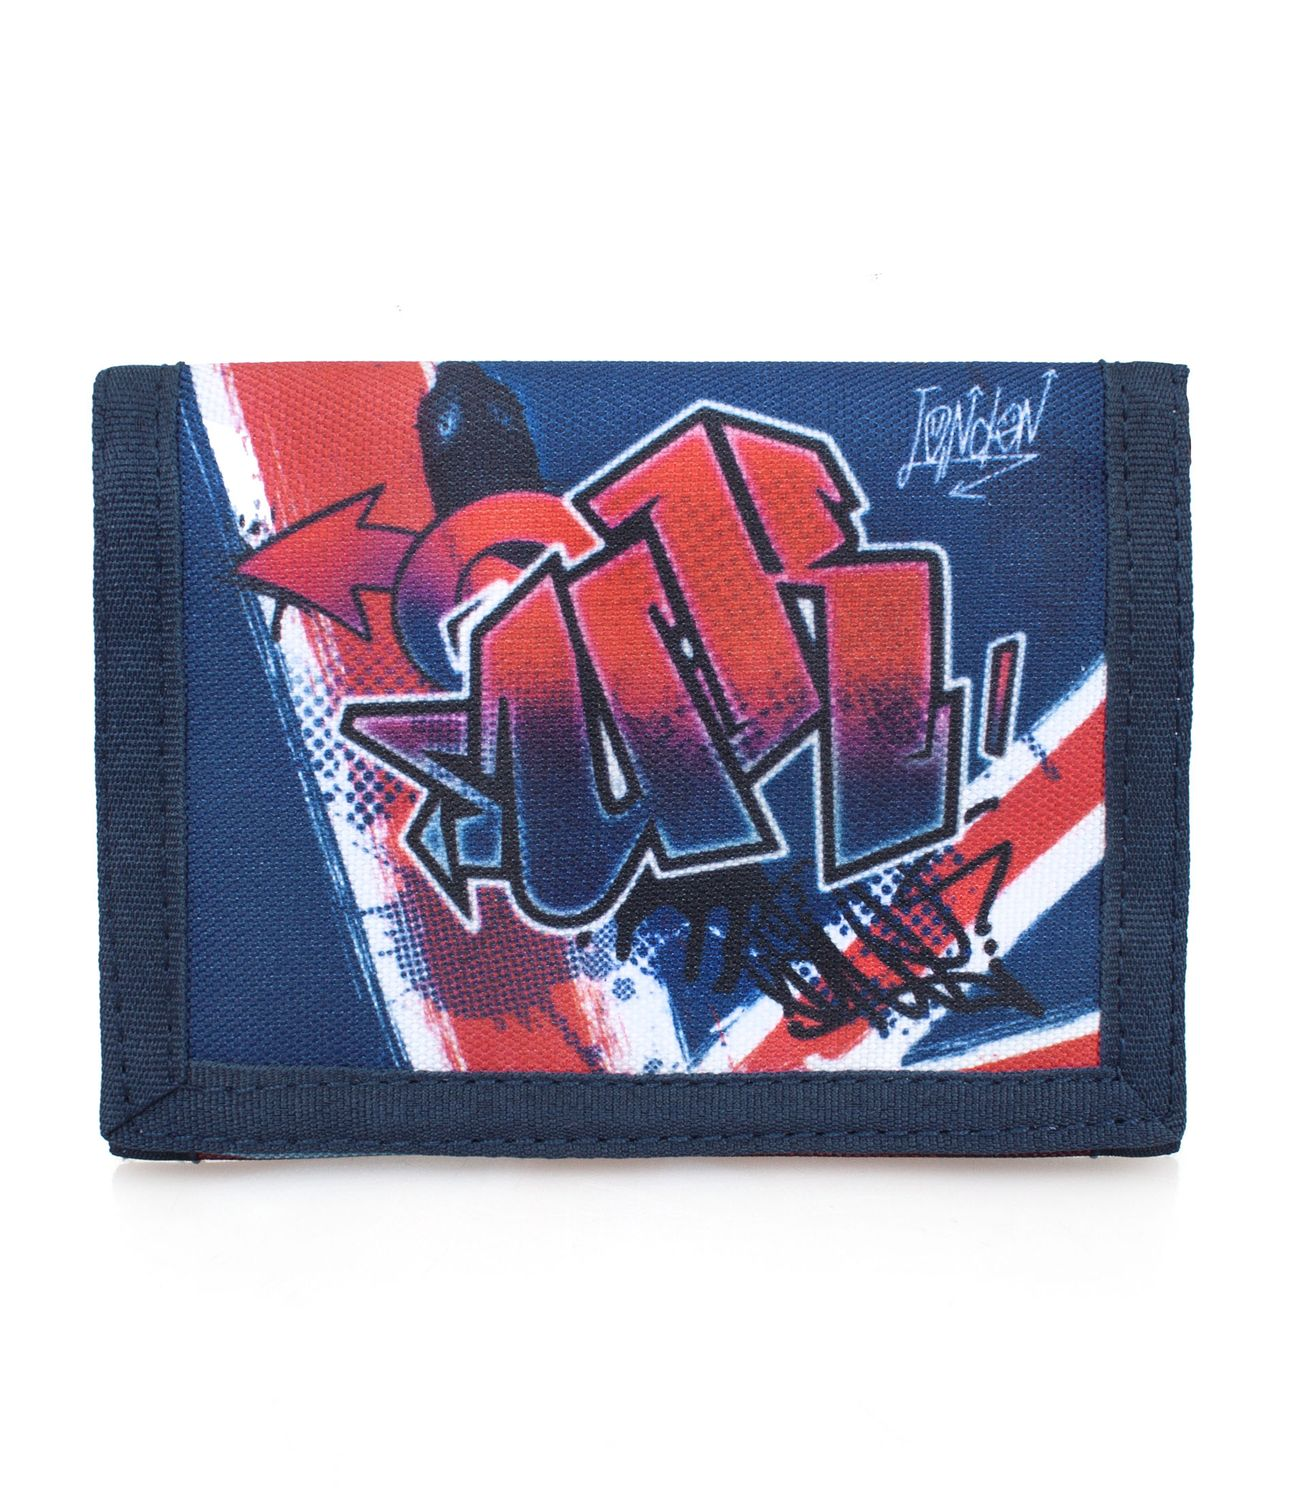 Delbag Union Jack UK Wallet – image 1